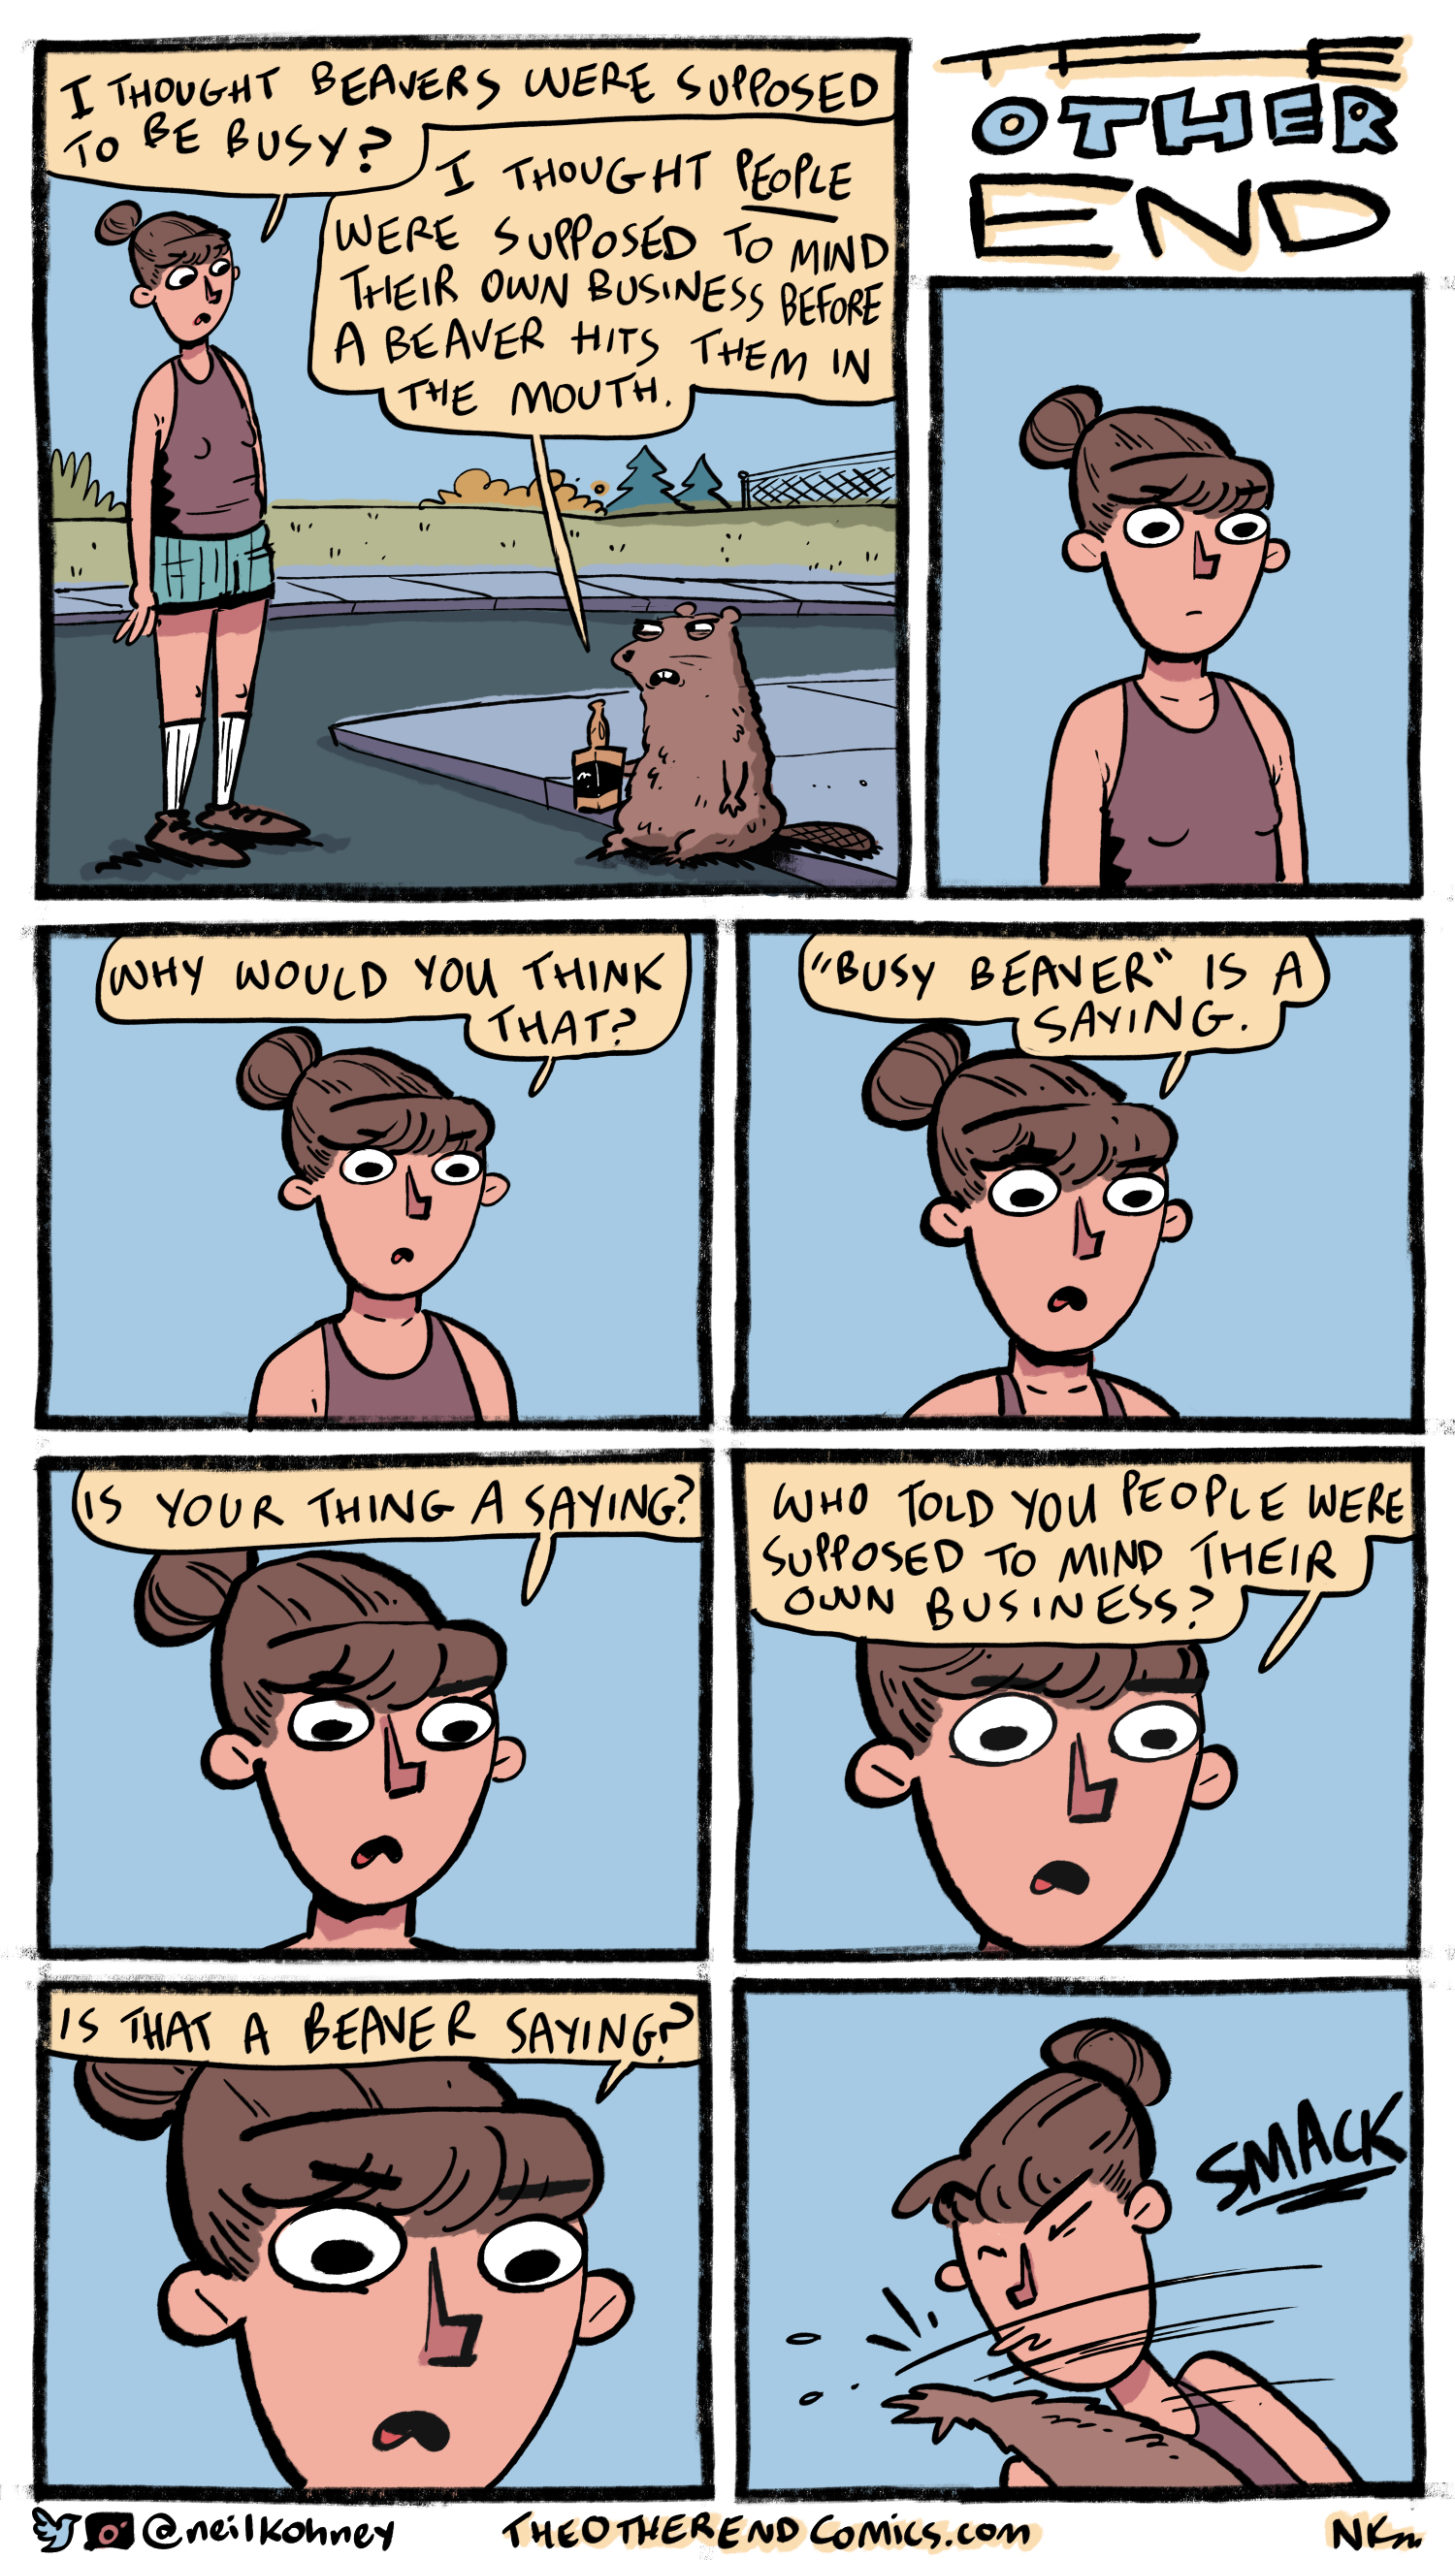 There's no way that beaver is tall enough to slap her like that. This comic is so fake